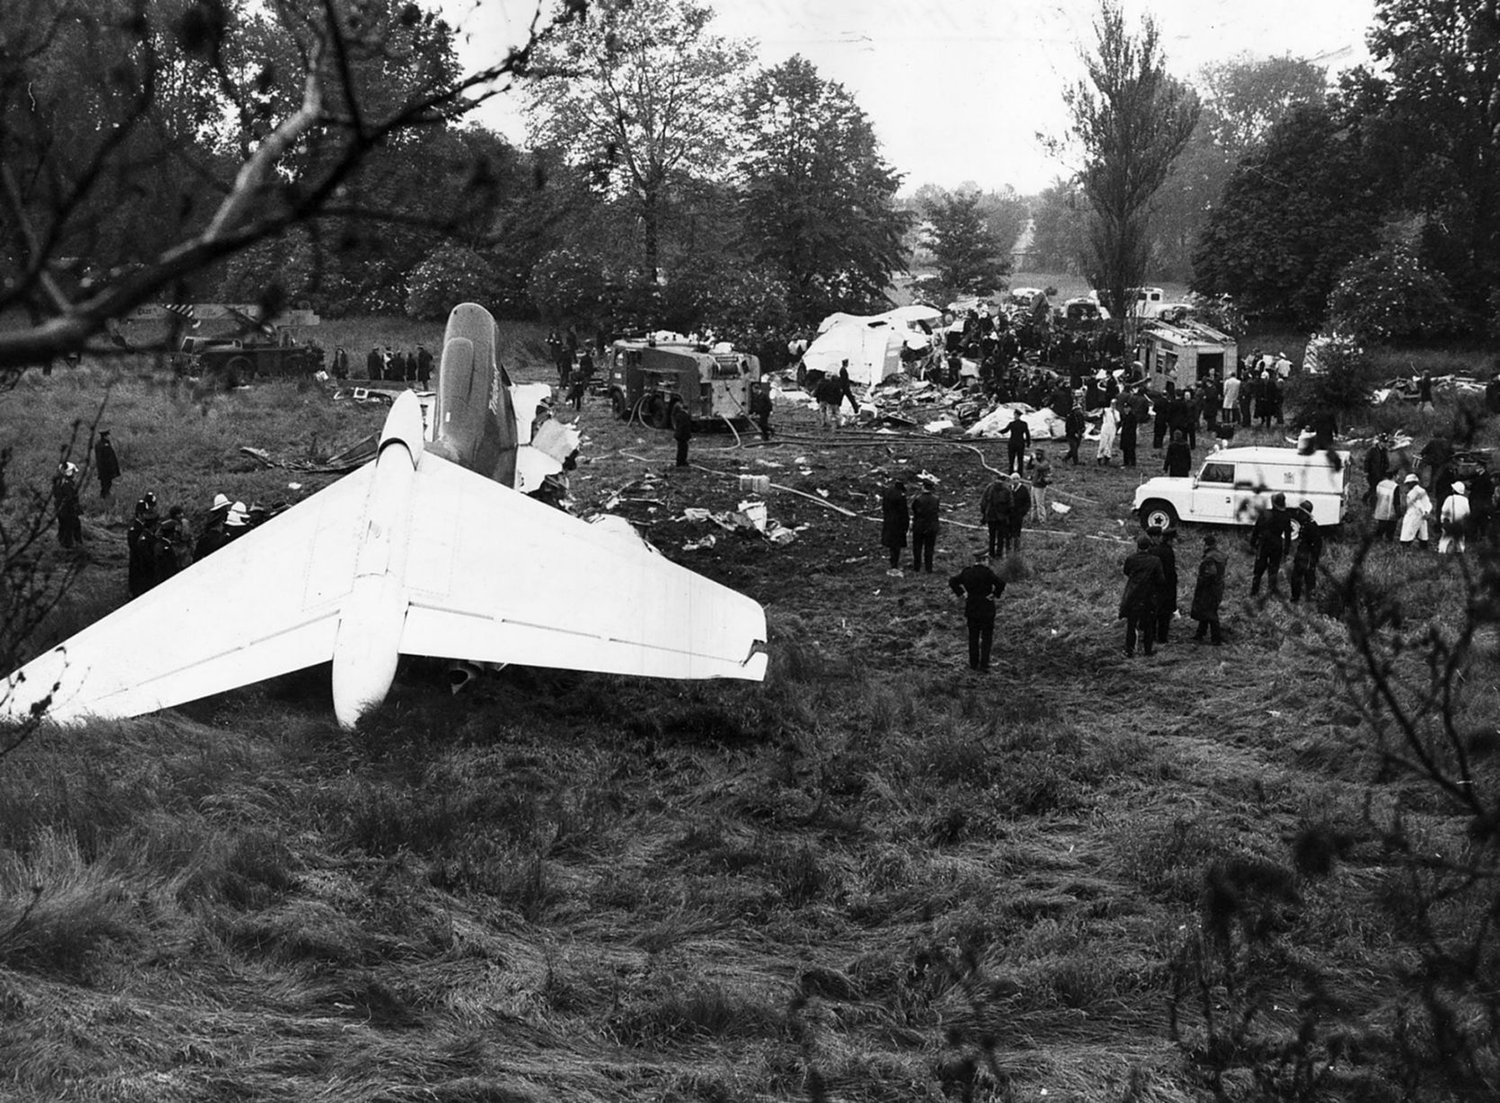 Crash Of A Hawker Siddeley Hs121 Trident 1c In London 118 Killed Crashed Aircraft Beacon